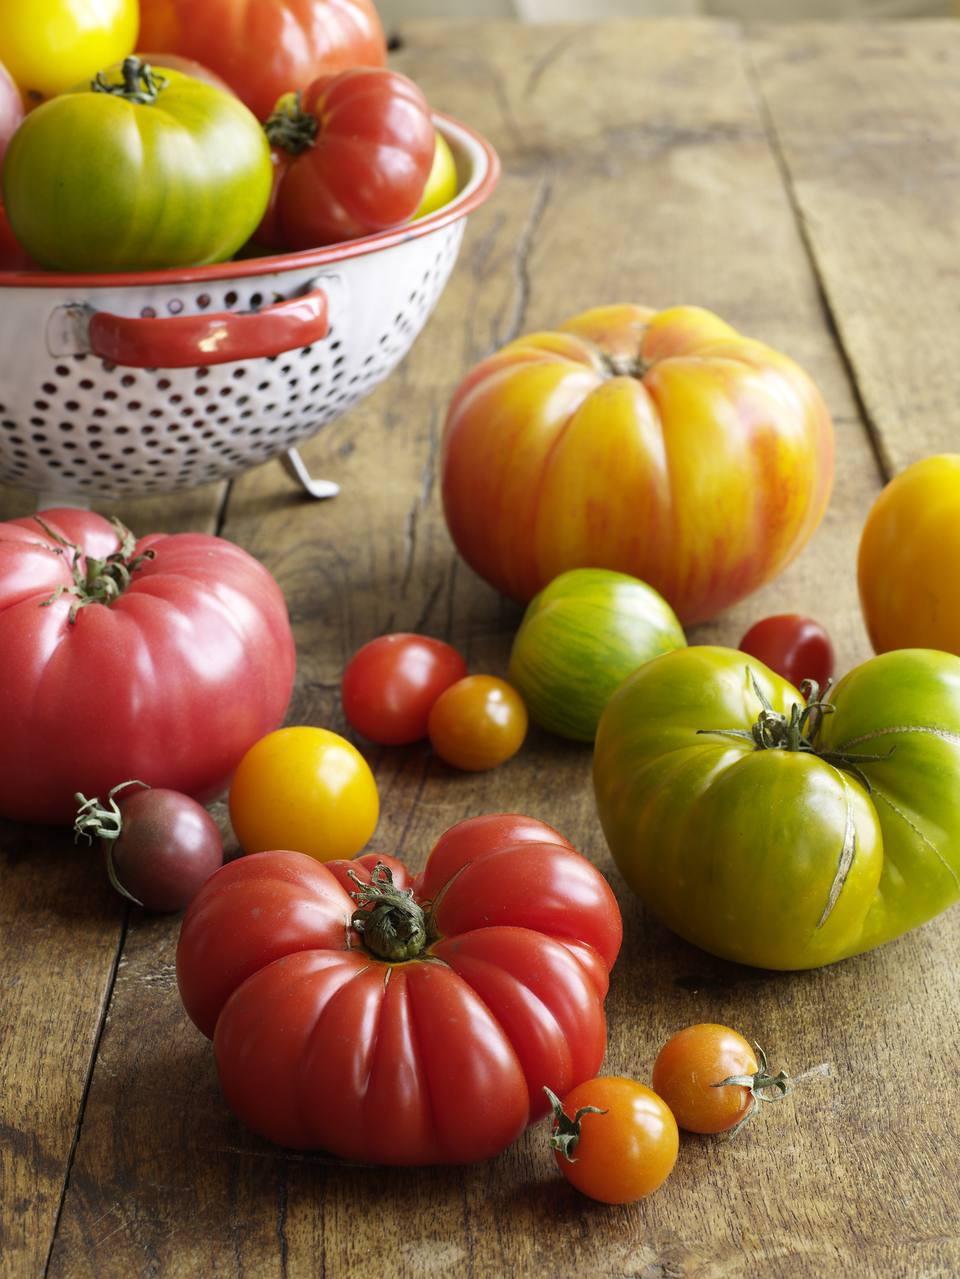 Variety of heirloom tomatoes on wood surface